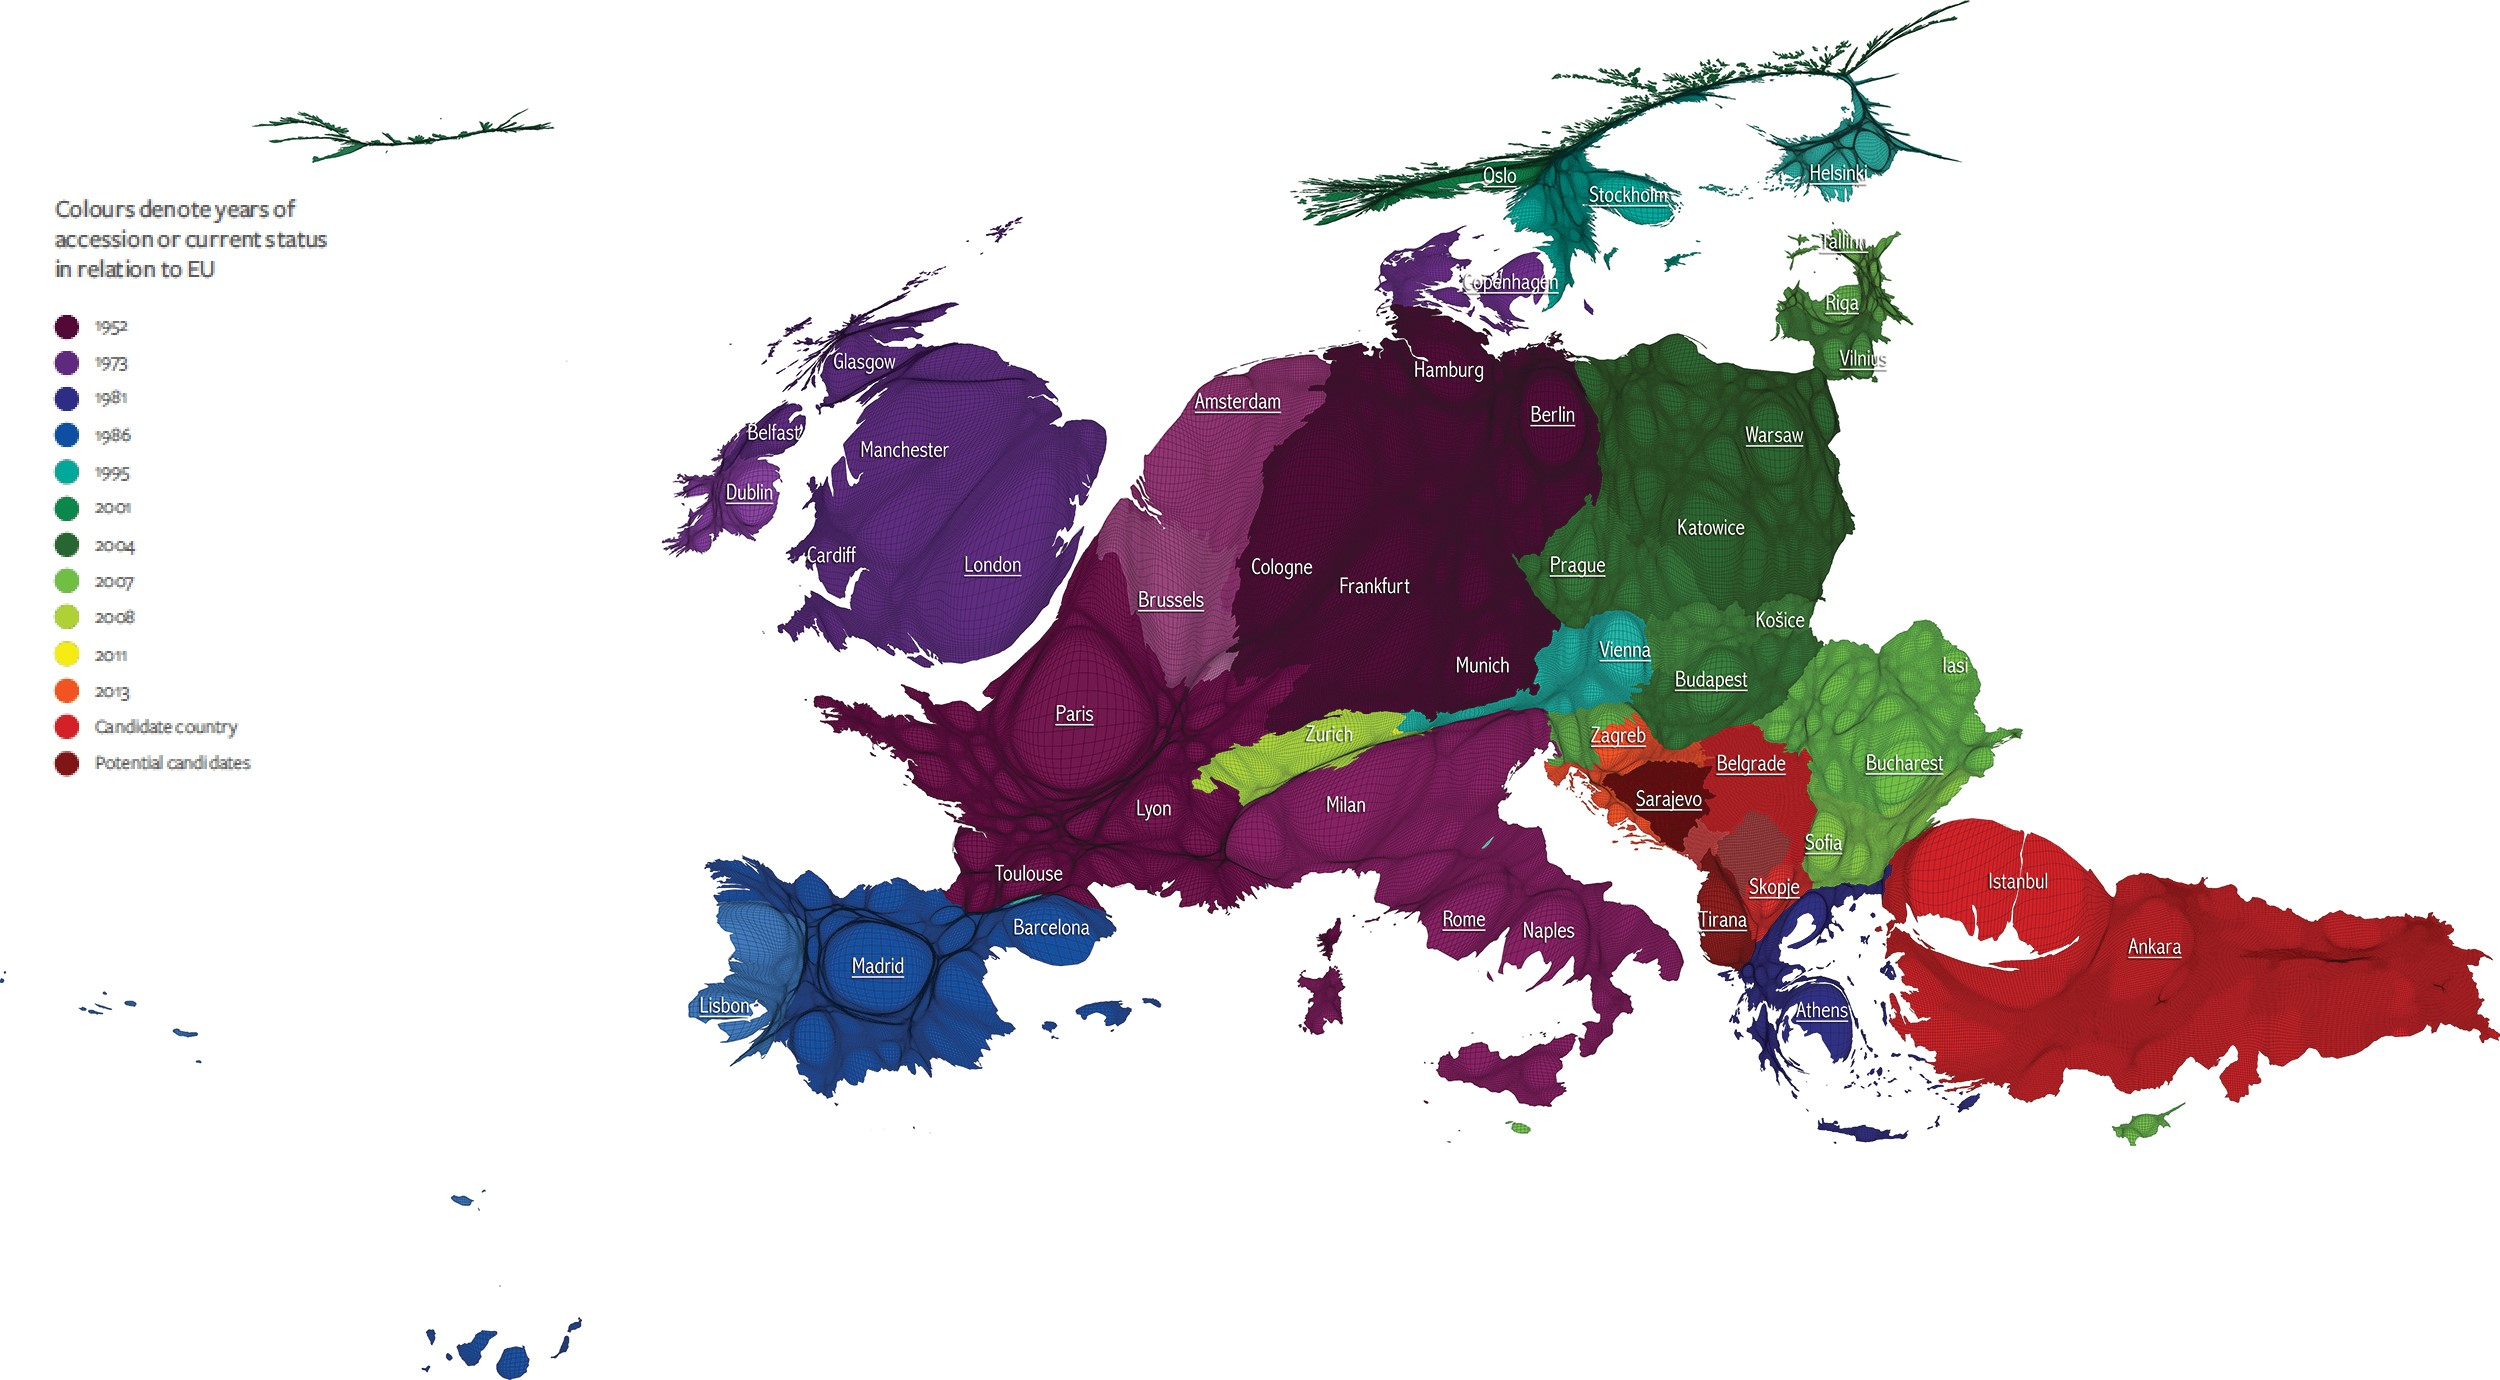 EUROPP     An atlas with a positive message for a European people     Source  The Human Atlas of Europe